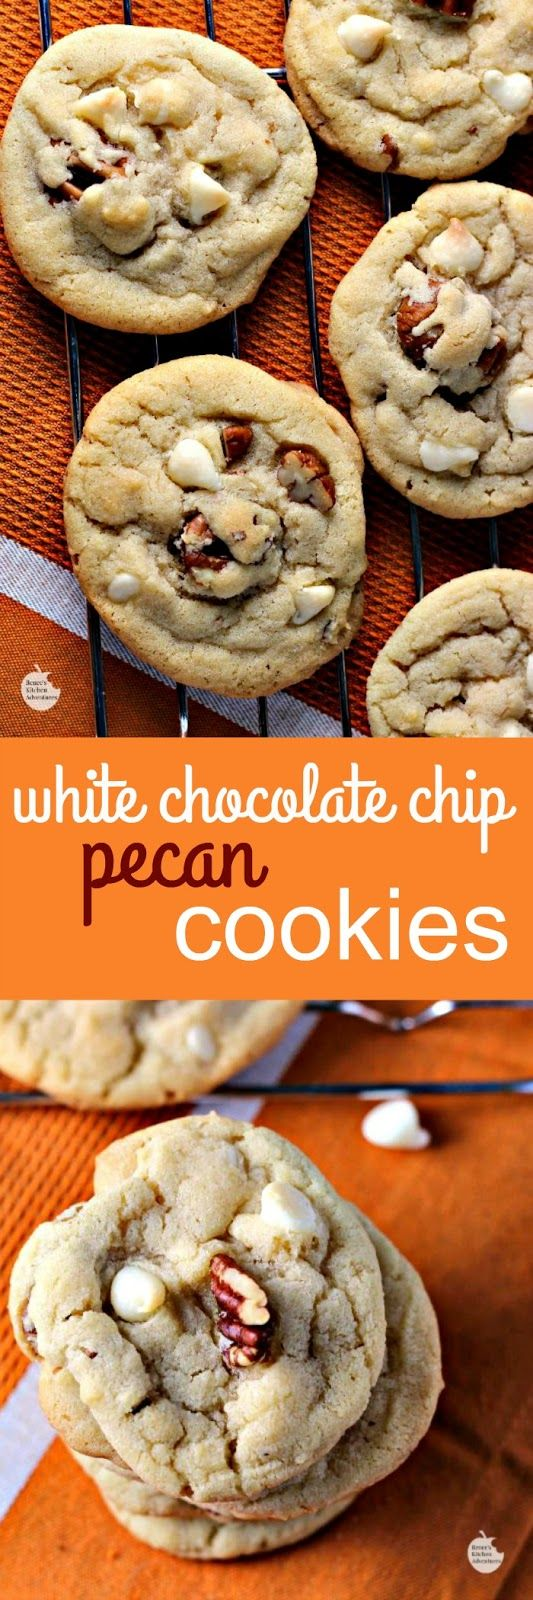 White Chocolate Chip Pecan Cookies   by Renee's Kitchen Adventures - Yummy buttery drop cookies that need to be in your cookie jar today!